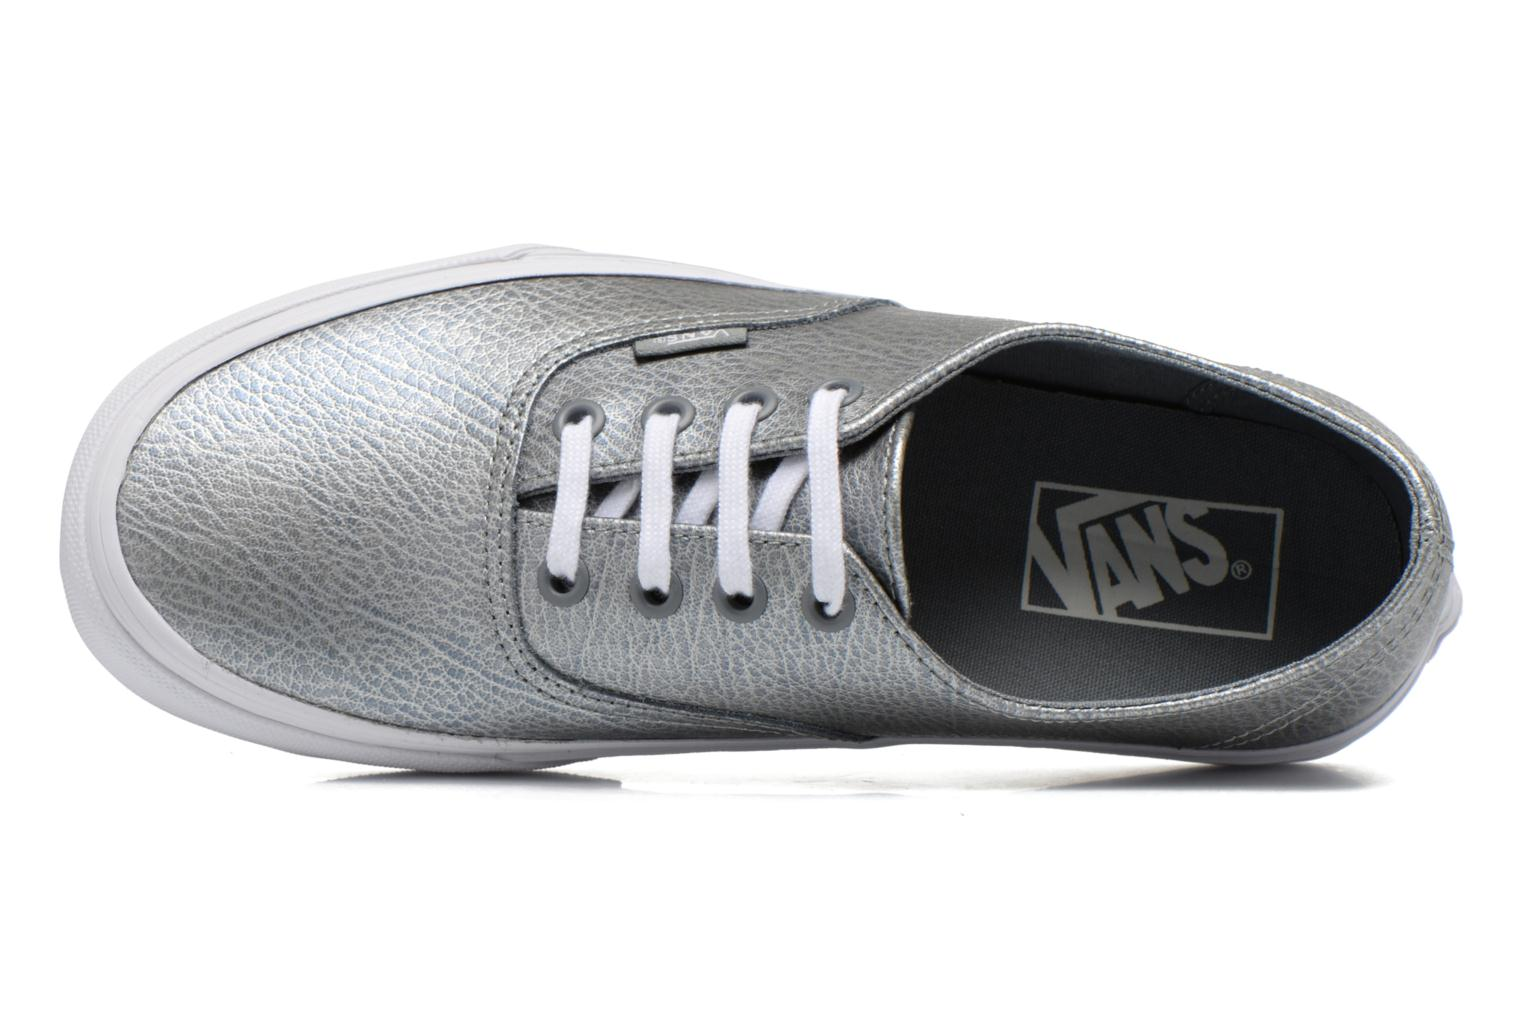 Authentic Decon W (Metallic Leather) gray